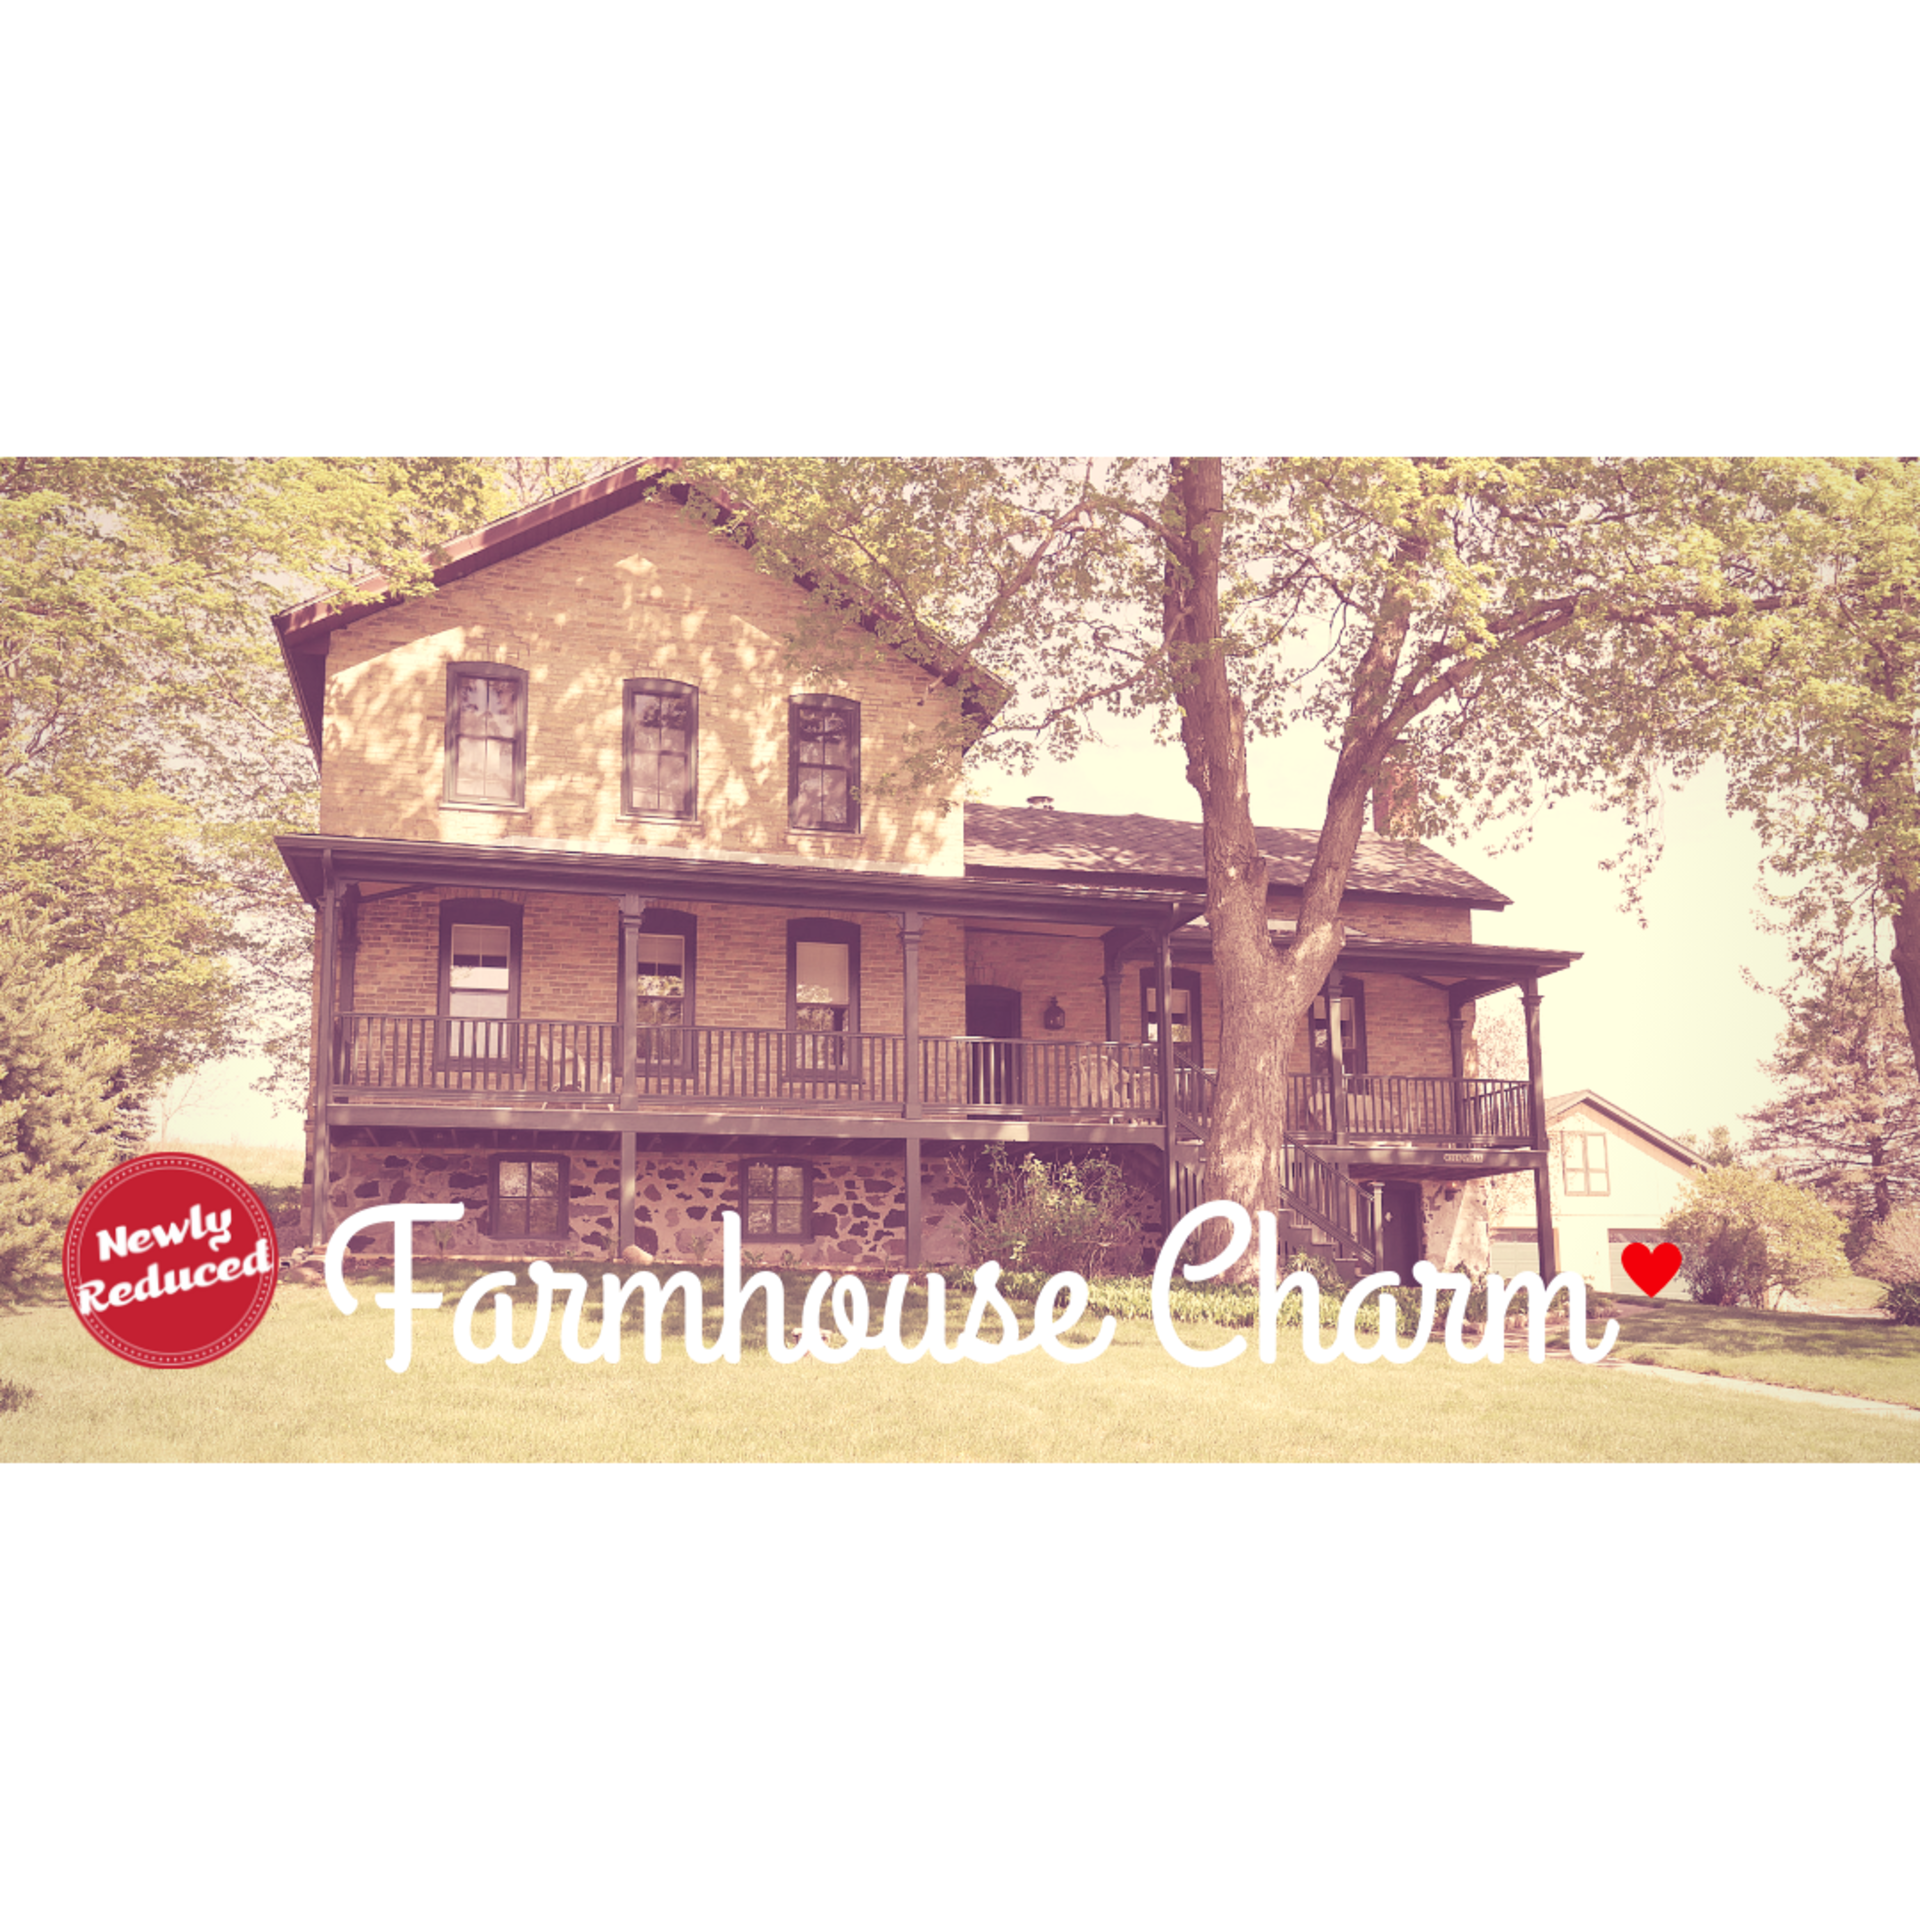 Remodeled Farmhouse for Sale